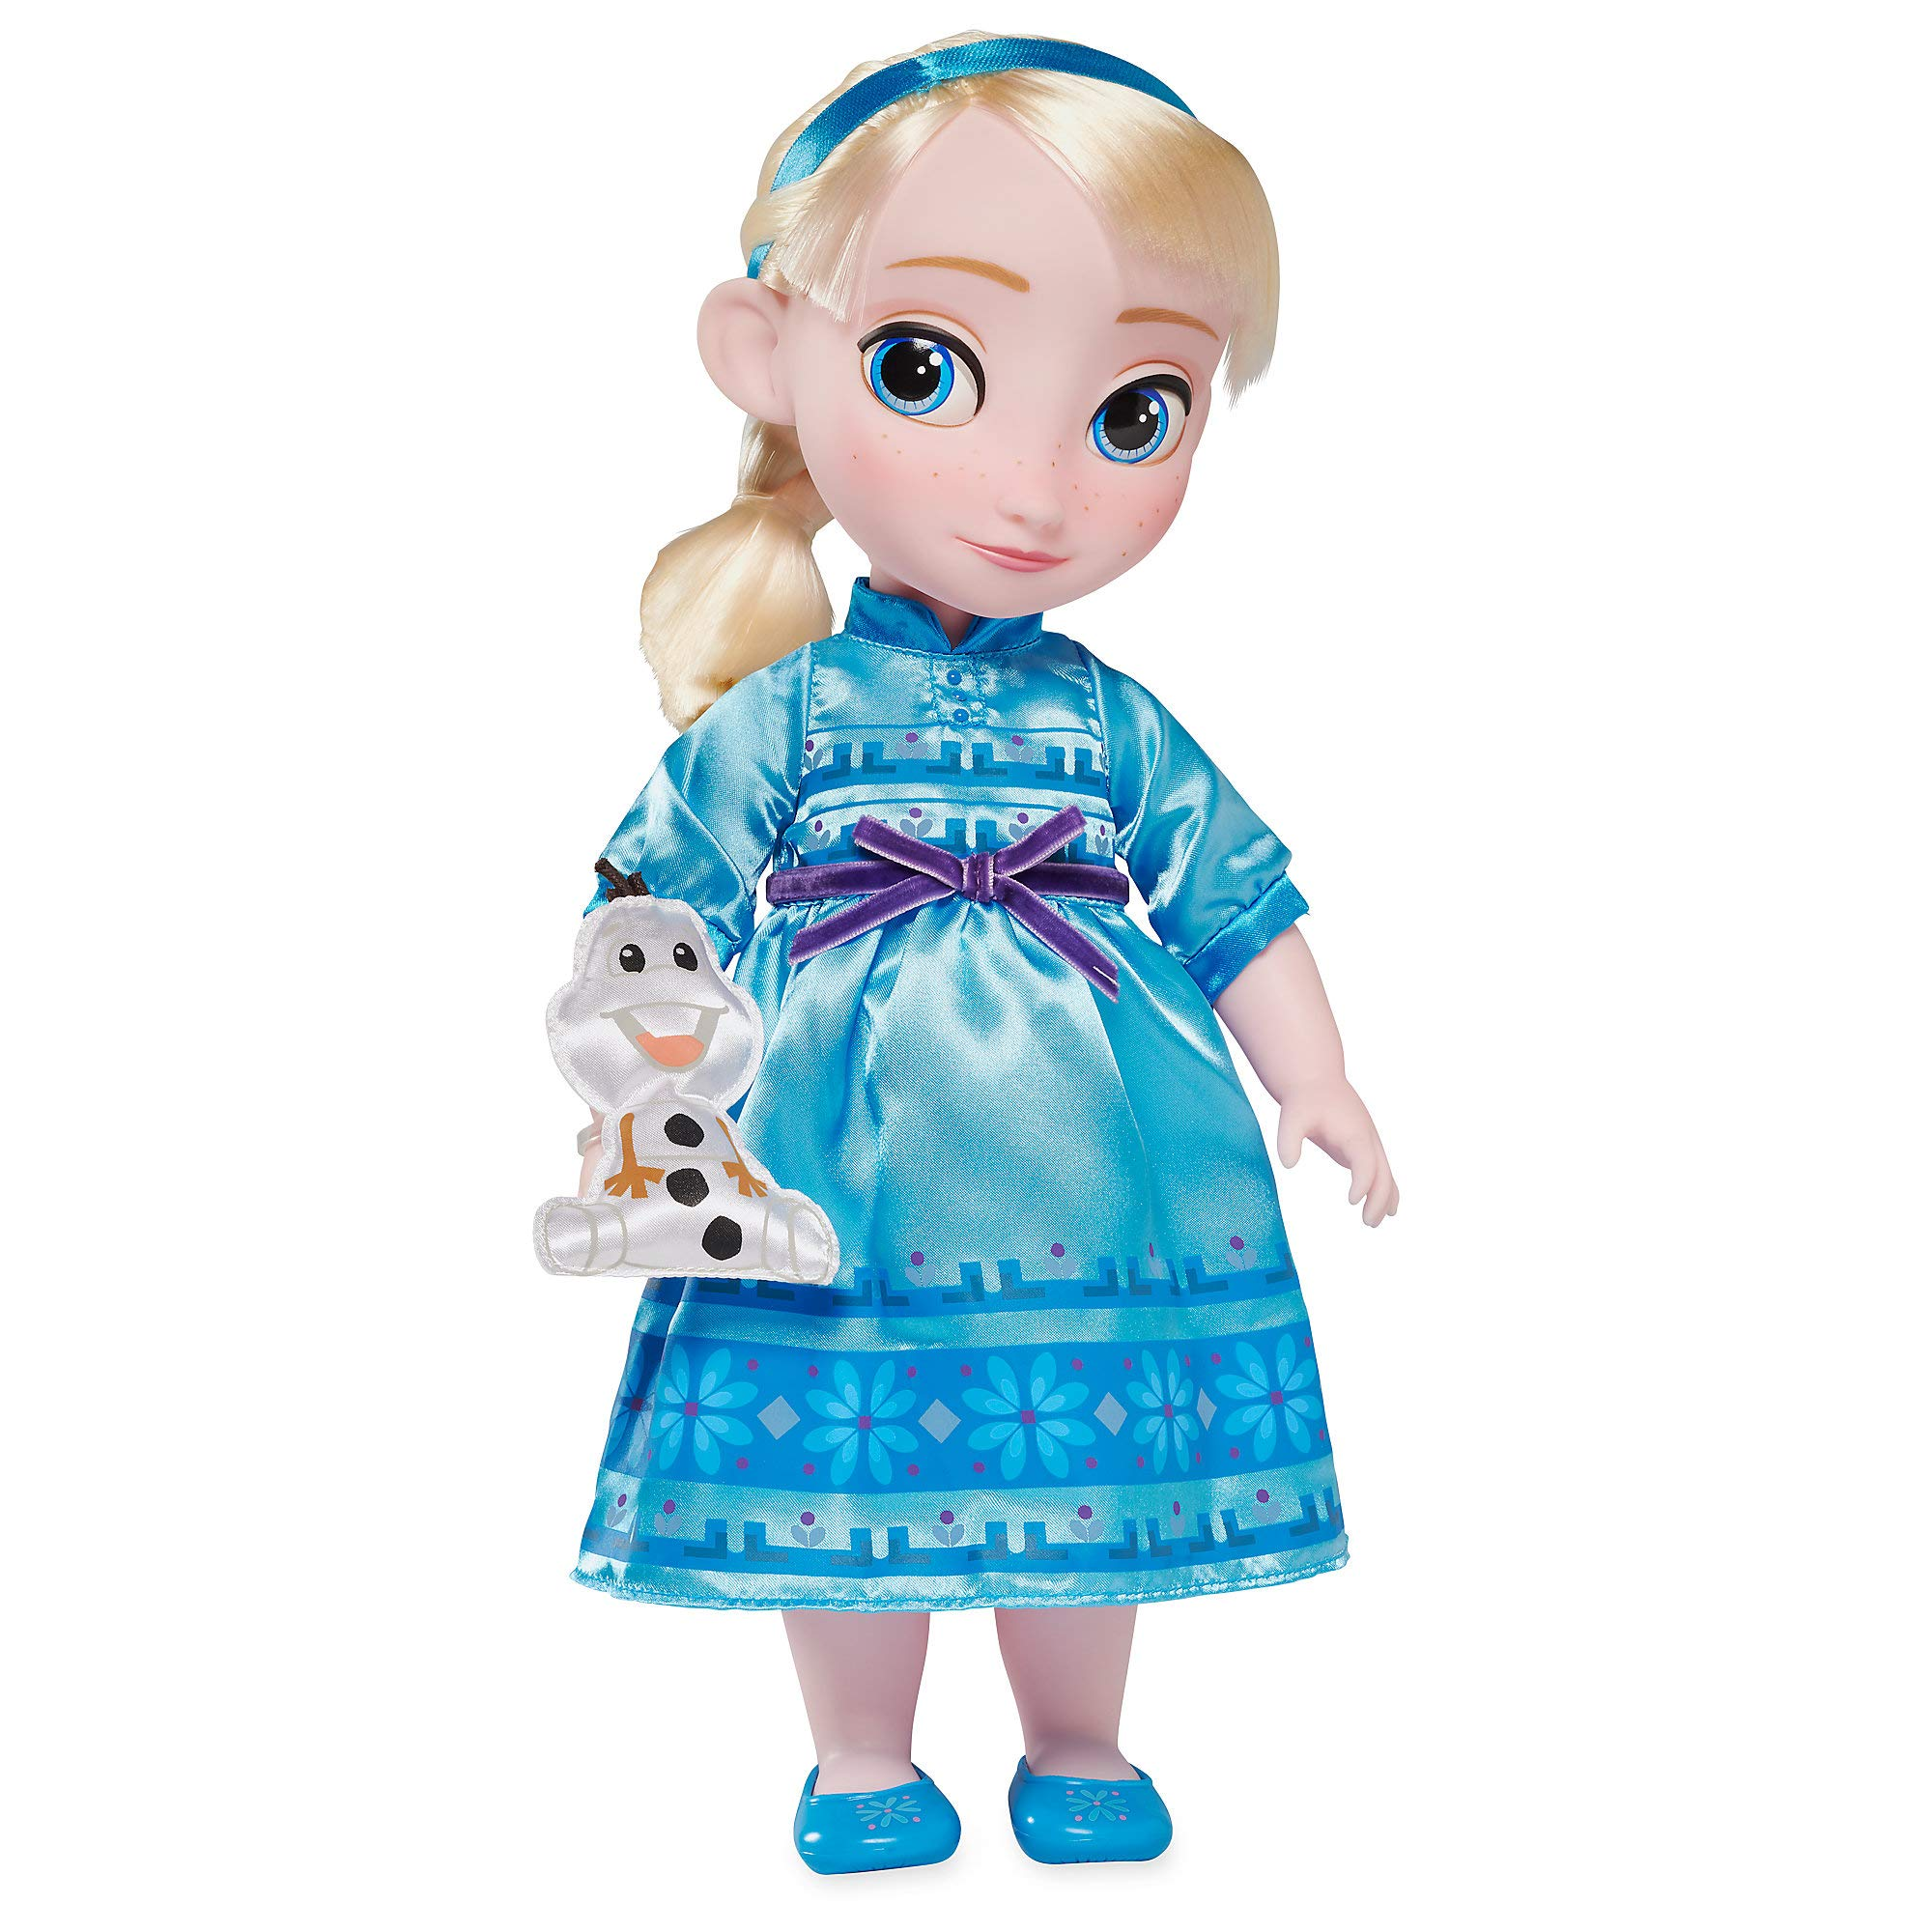 Disney Animators' Collection Elsa Doll – Frozen – 16 Inch